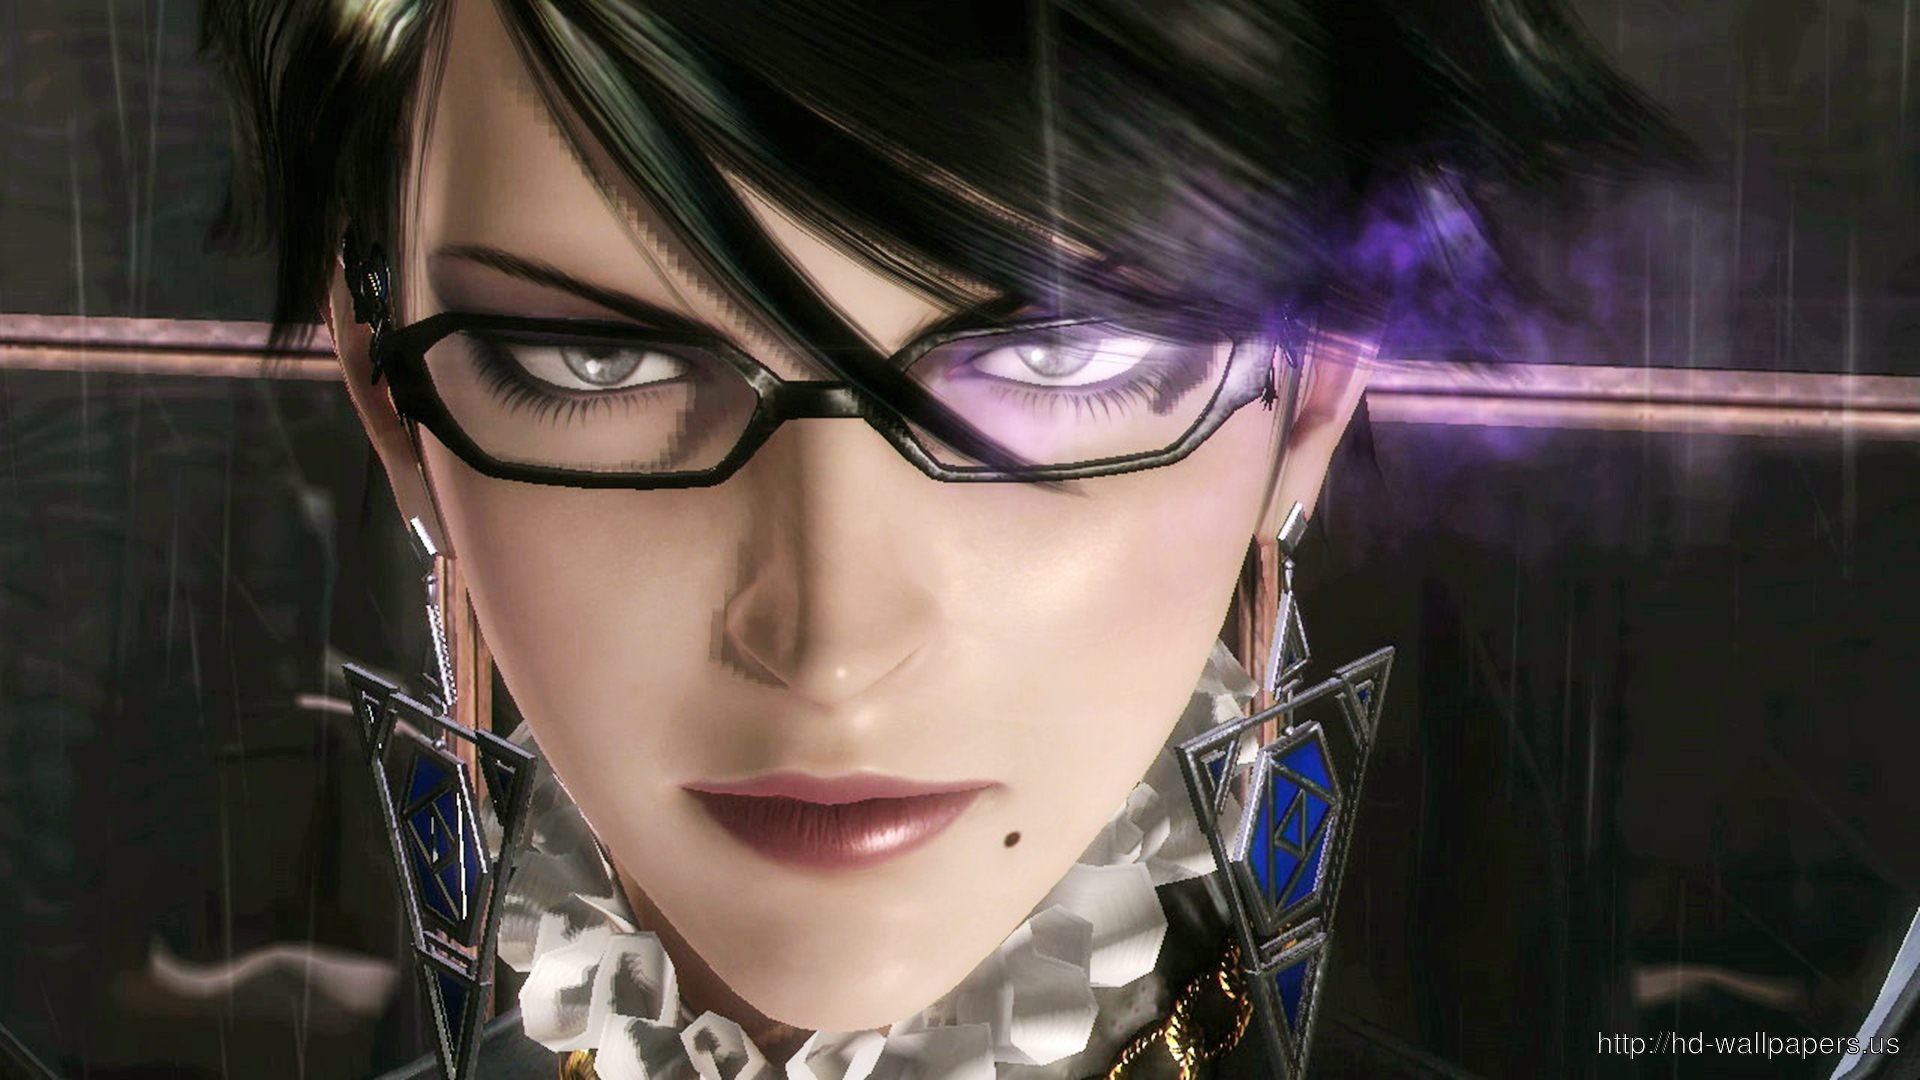 Bayonetta Makes Her Way to Steam on PC at 60fps with Unlocked HD Resolution